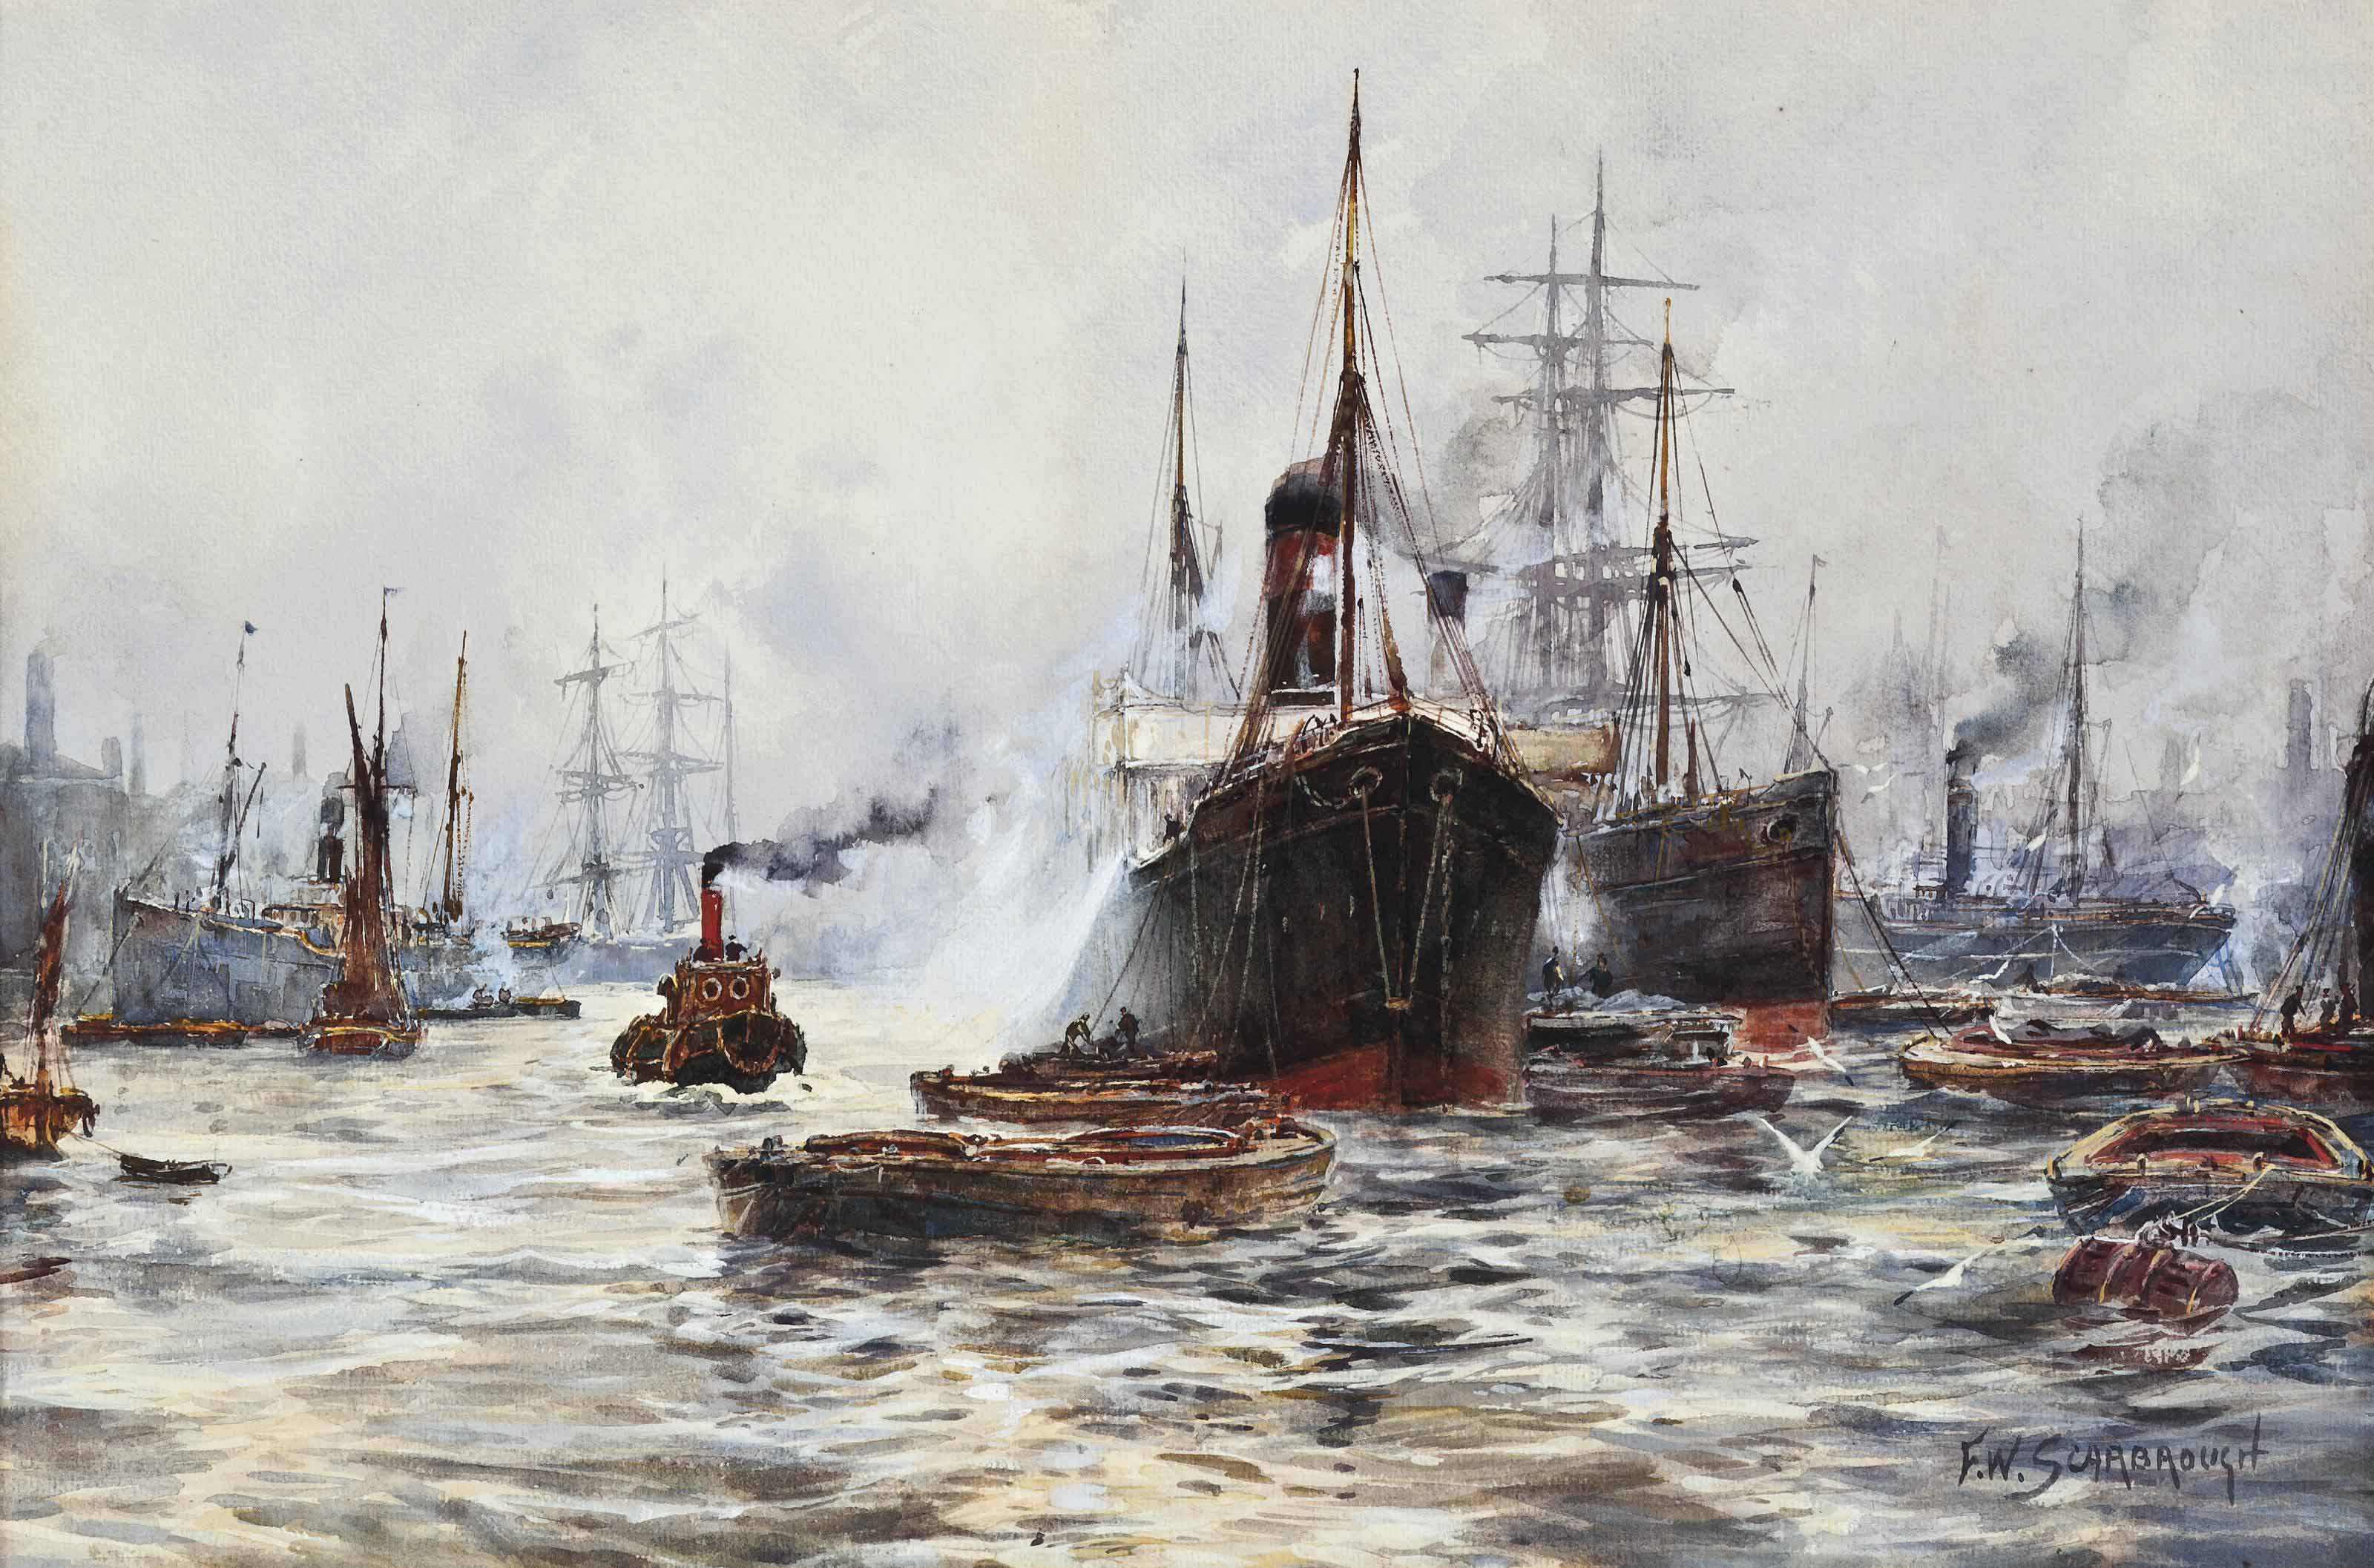 A bustle of activity on the Thames, London